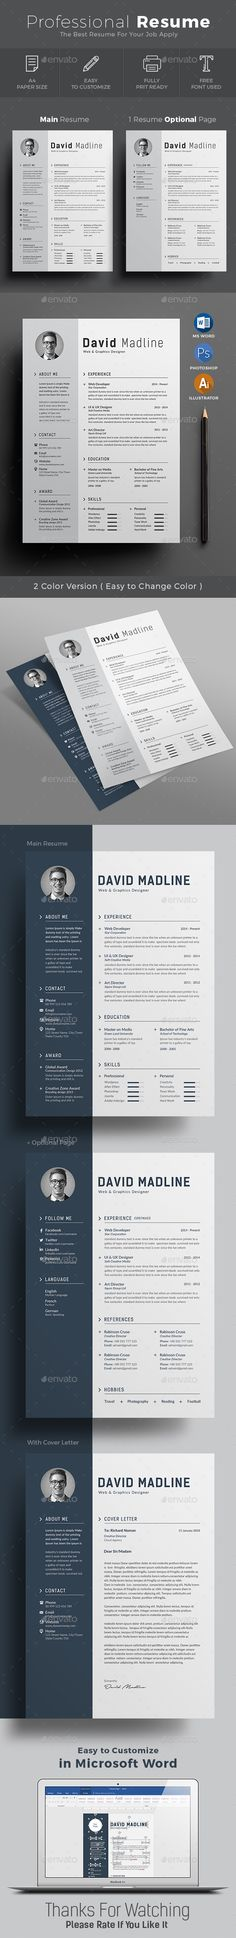 Clean Cv-Resume - #Resumes Download here https\/\/creativemarket - free resumes to download